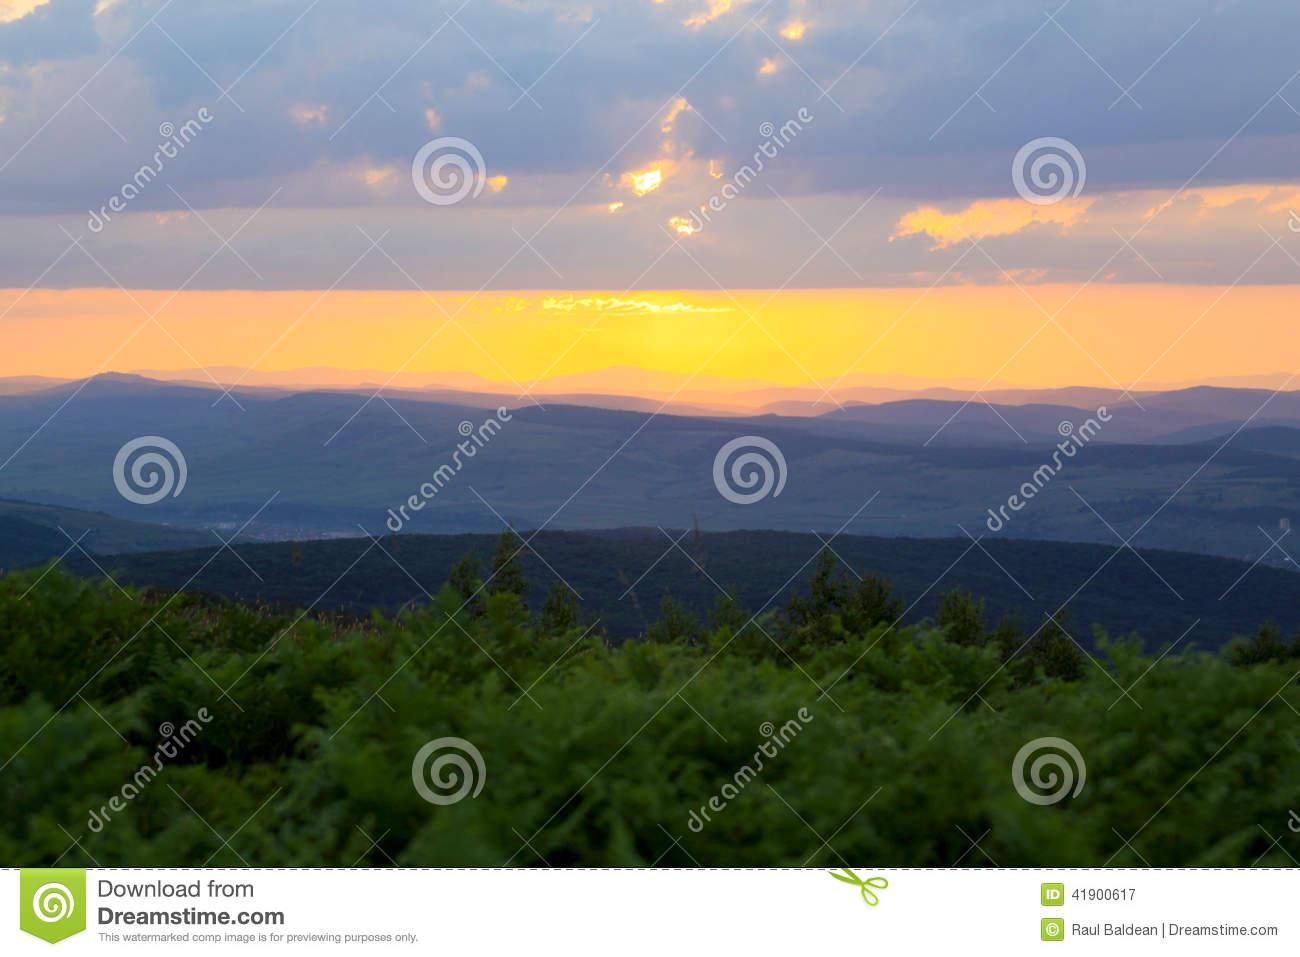 Sunset with green vegetation